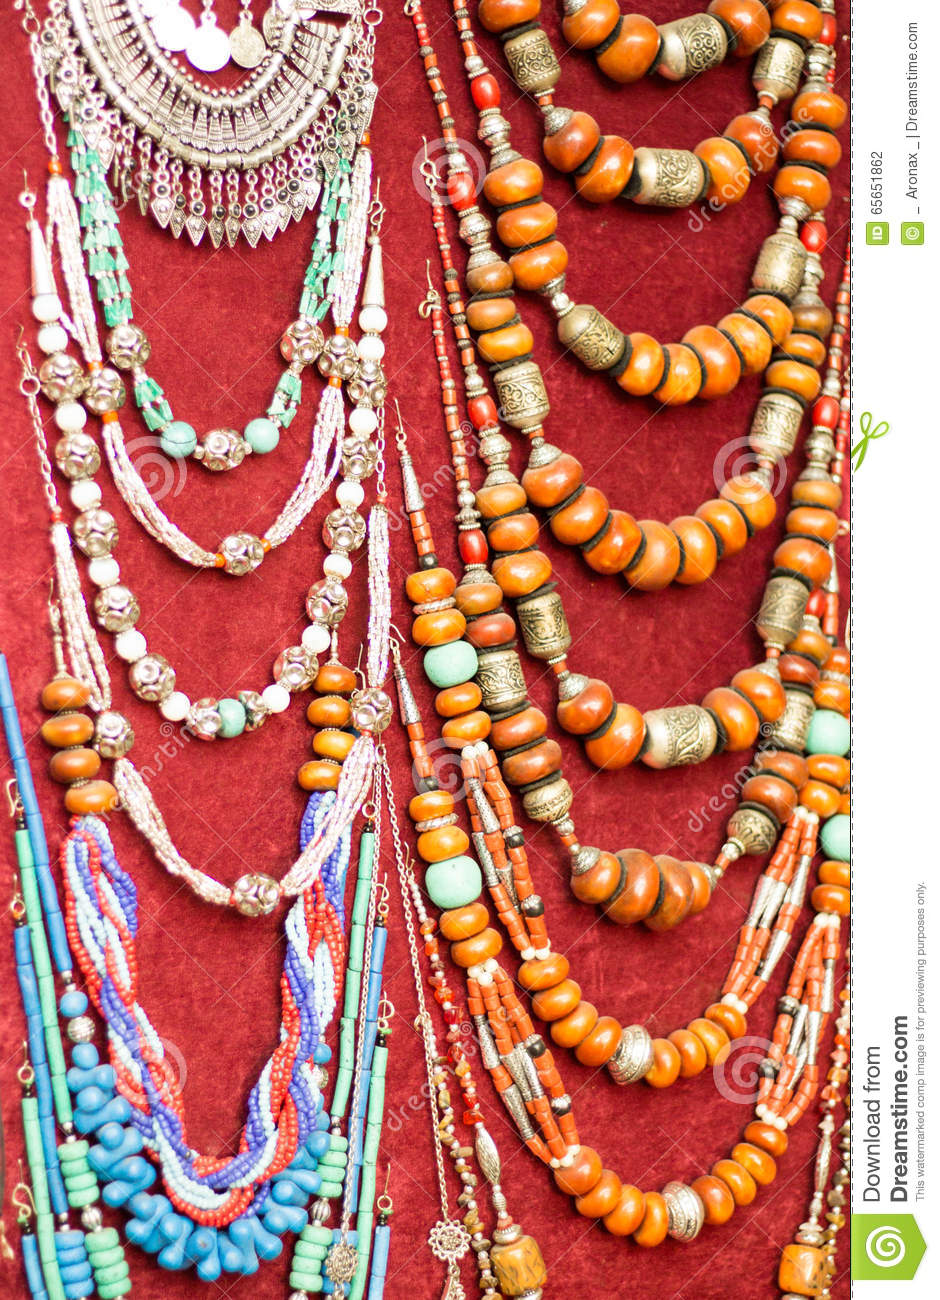 Necklaces in a market in Marrakesh